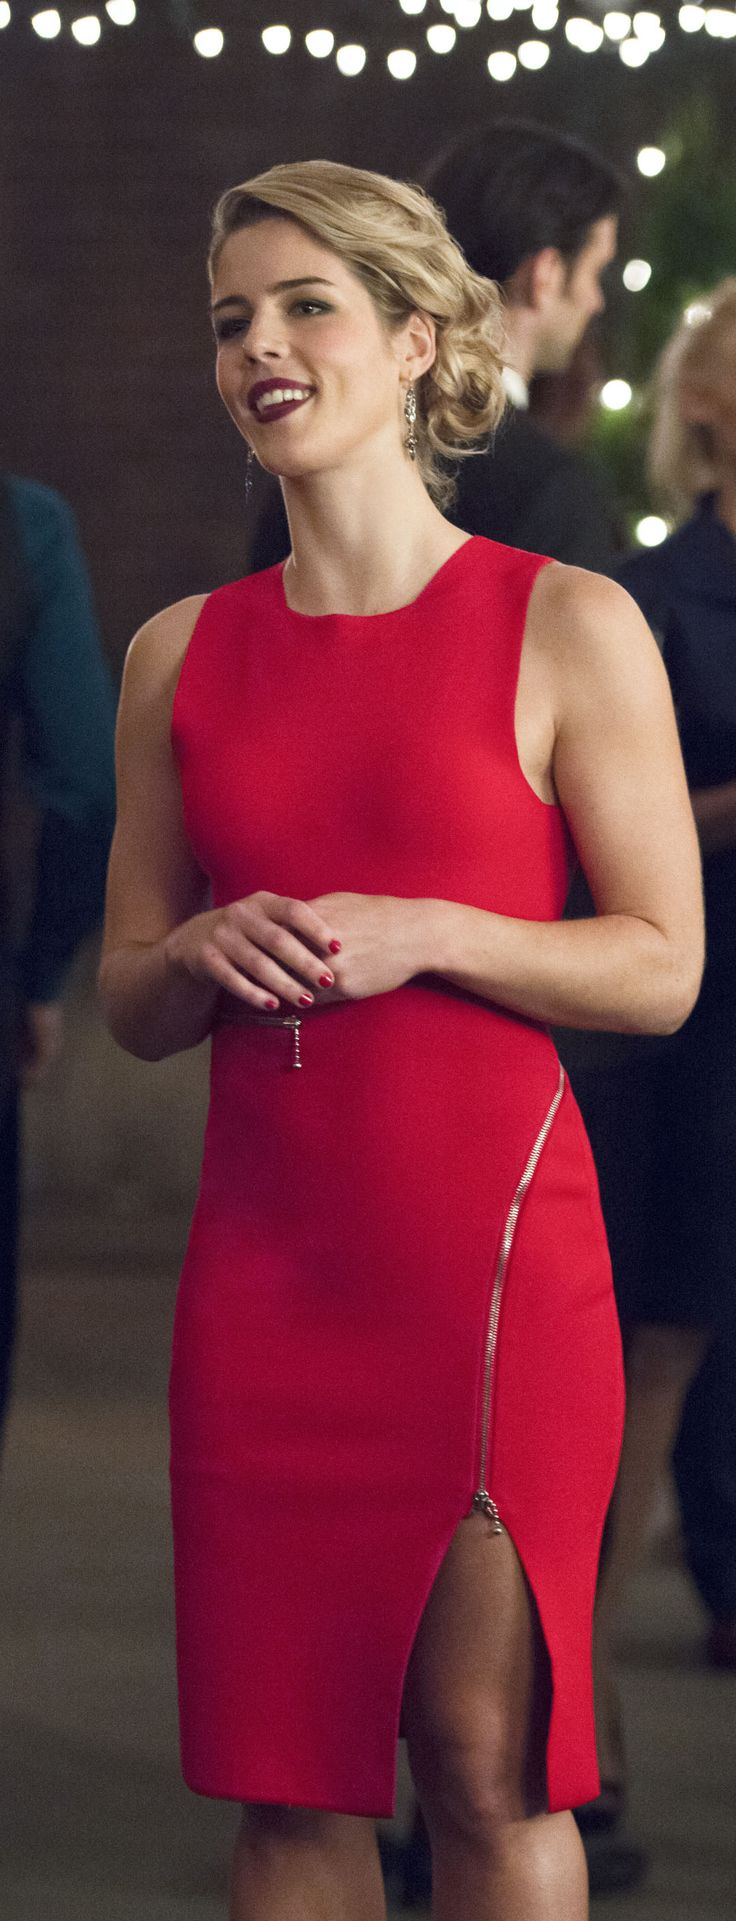 Arrow 4x09 - Felicity Smoak